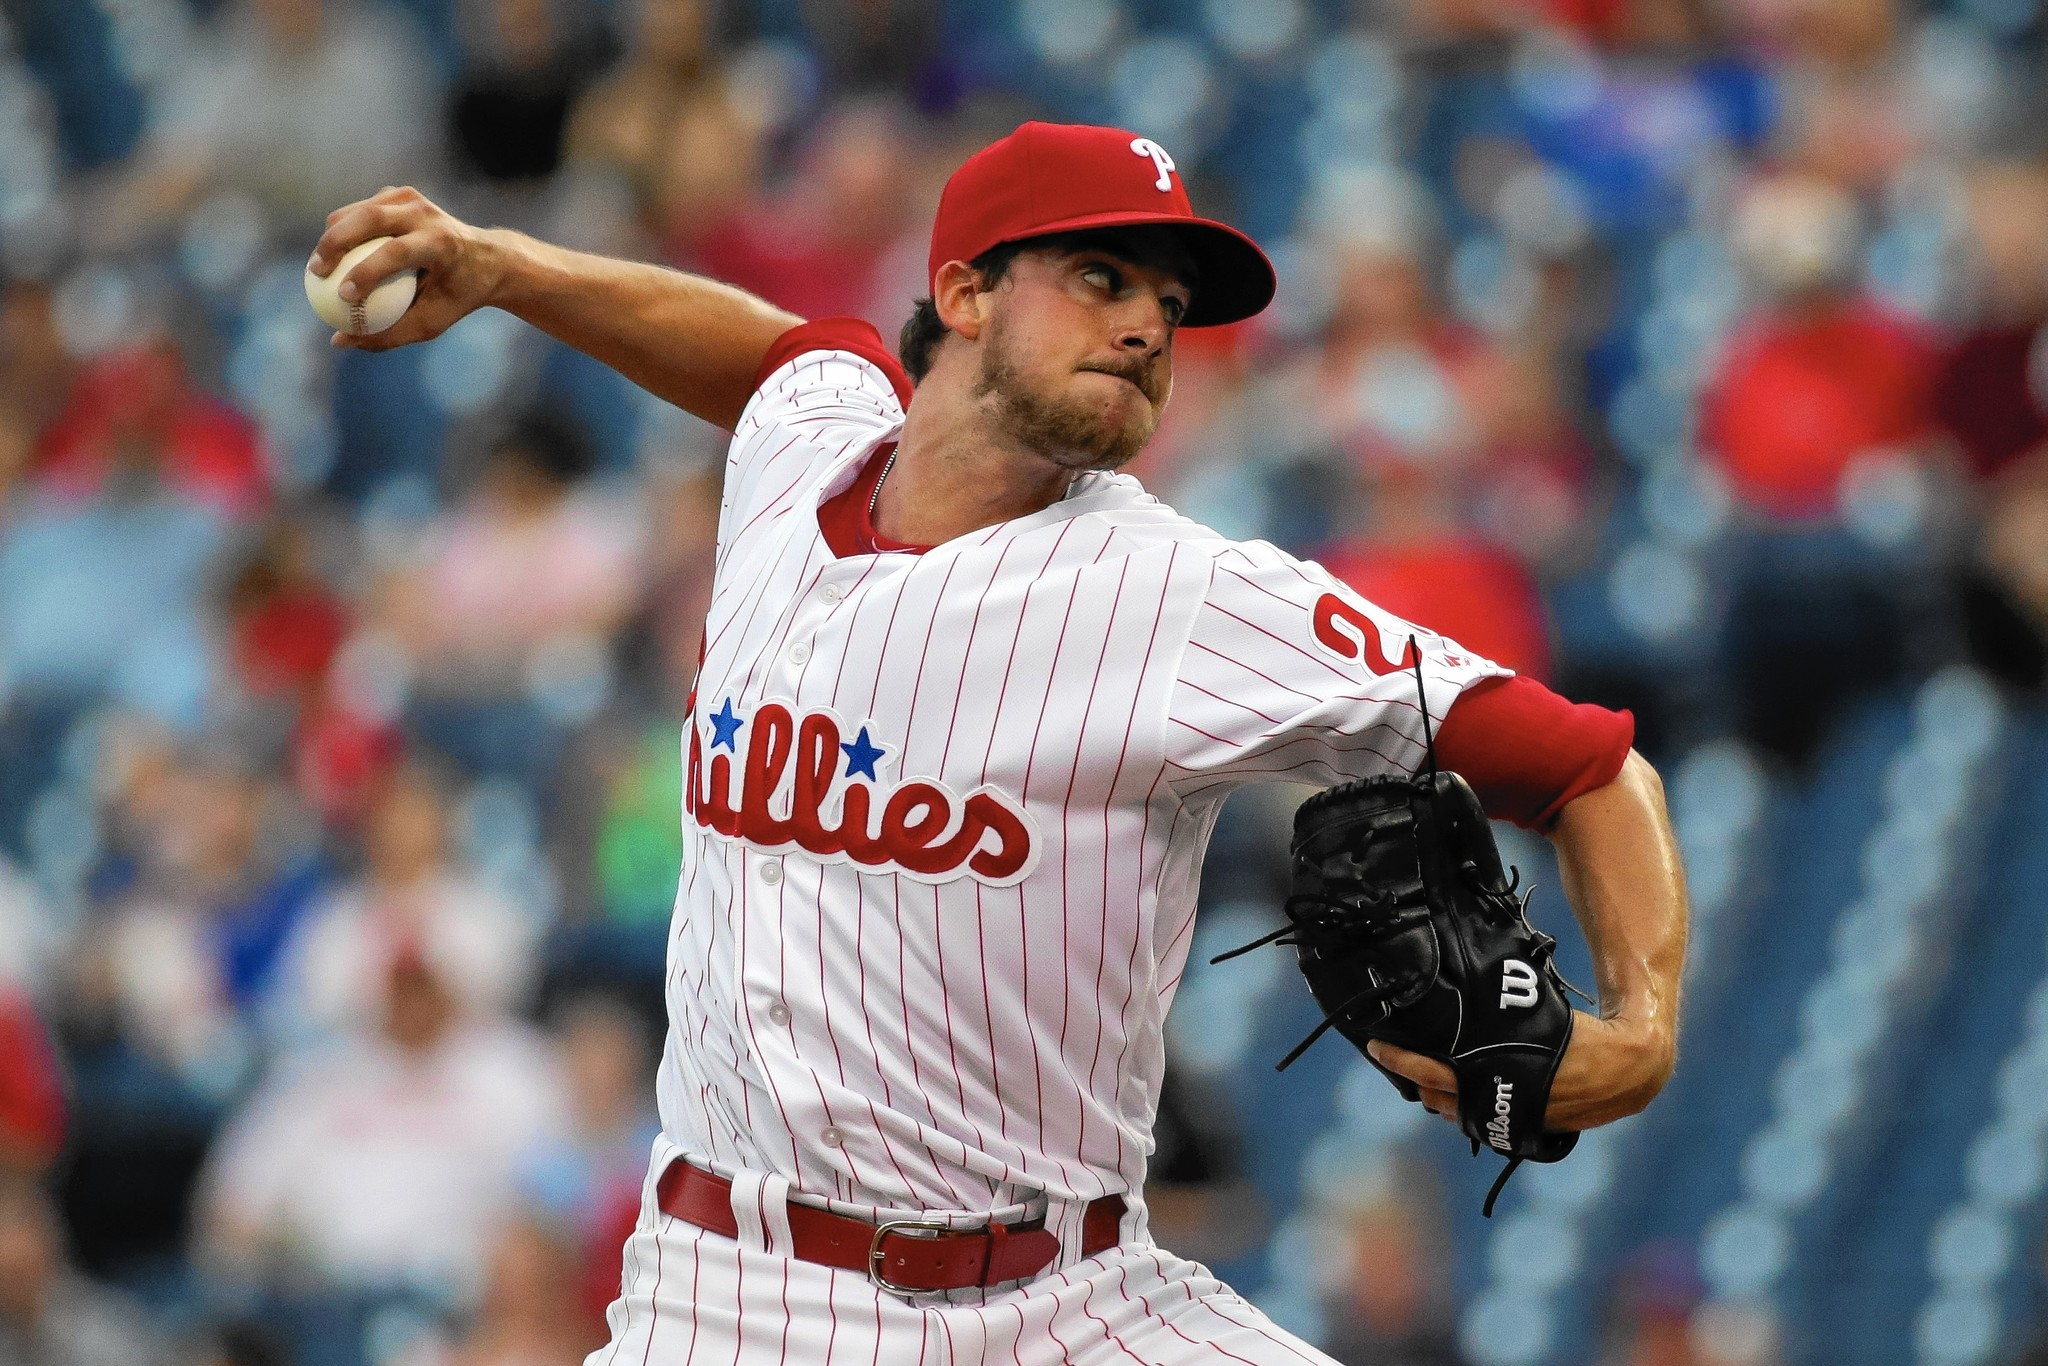 Mc-phillies-marlins-game-0718-20160718